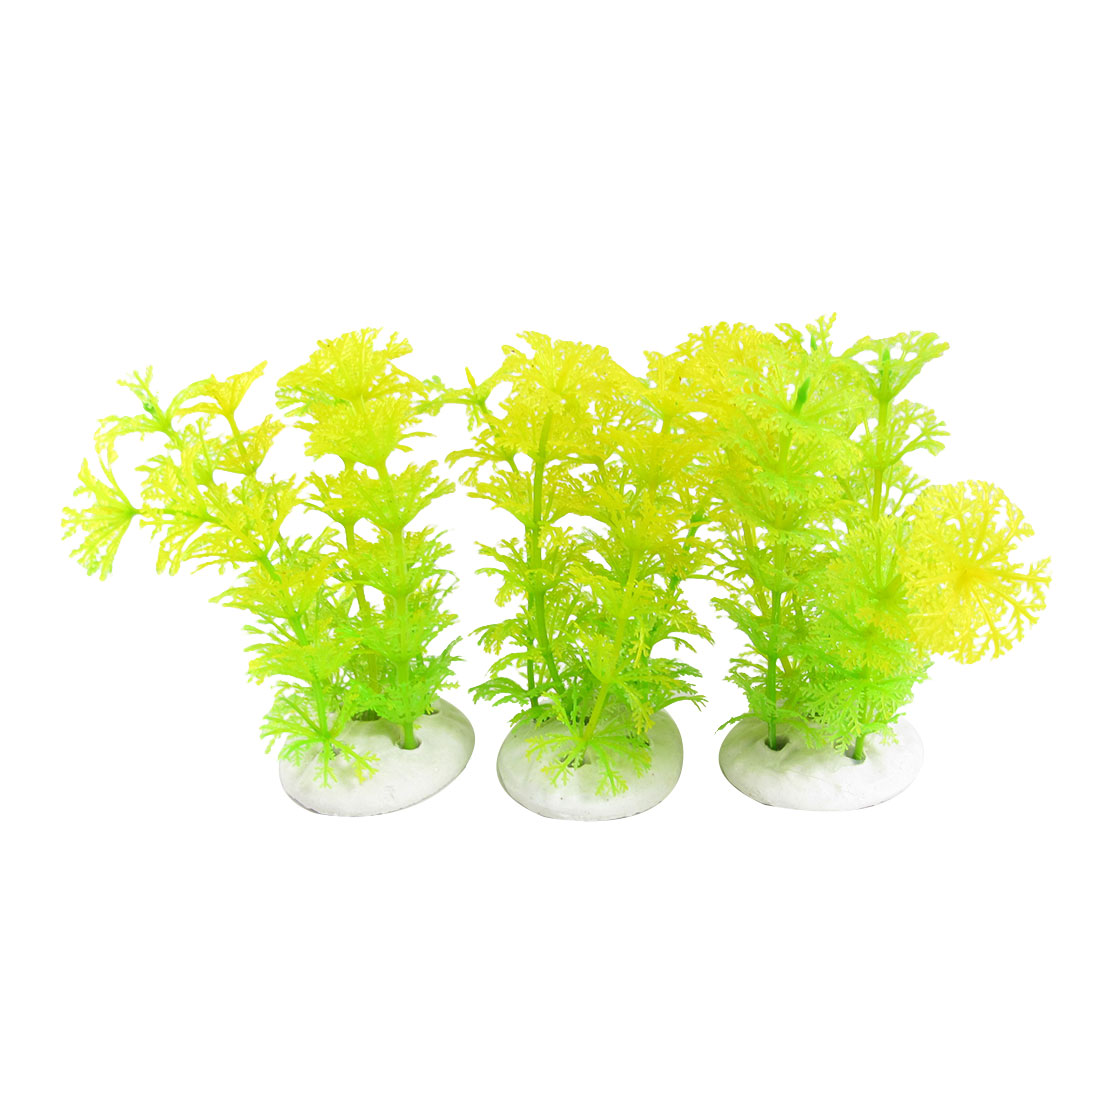 3PCS Lime Plastic Undweater Ornament Decor for Fish Tank